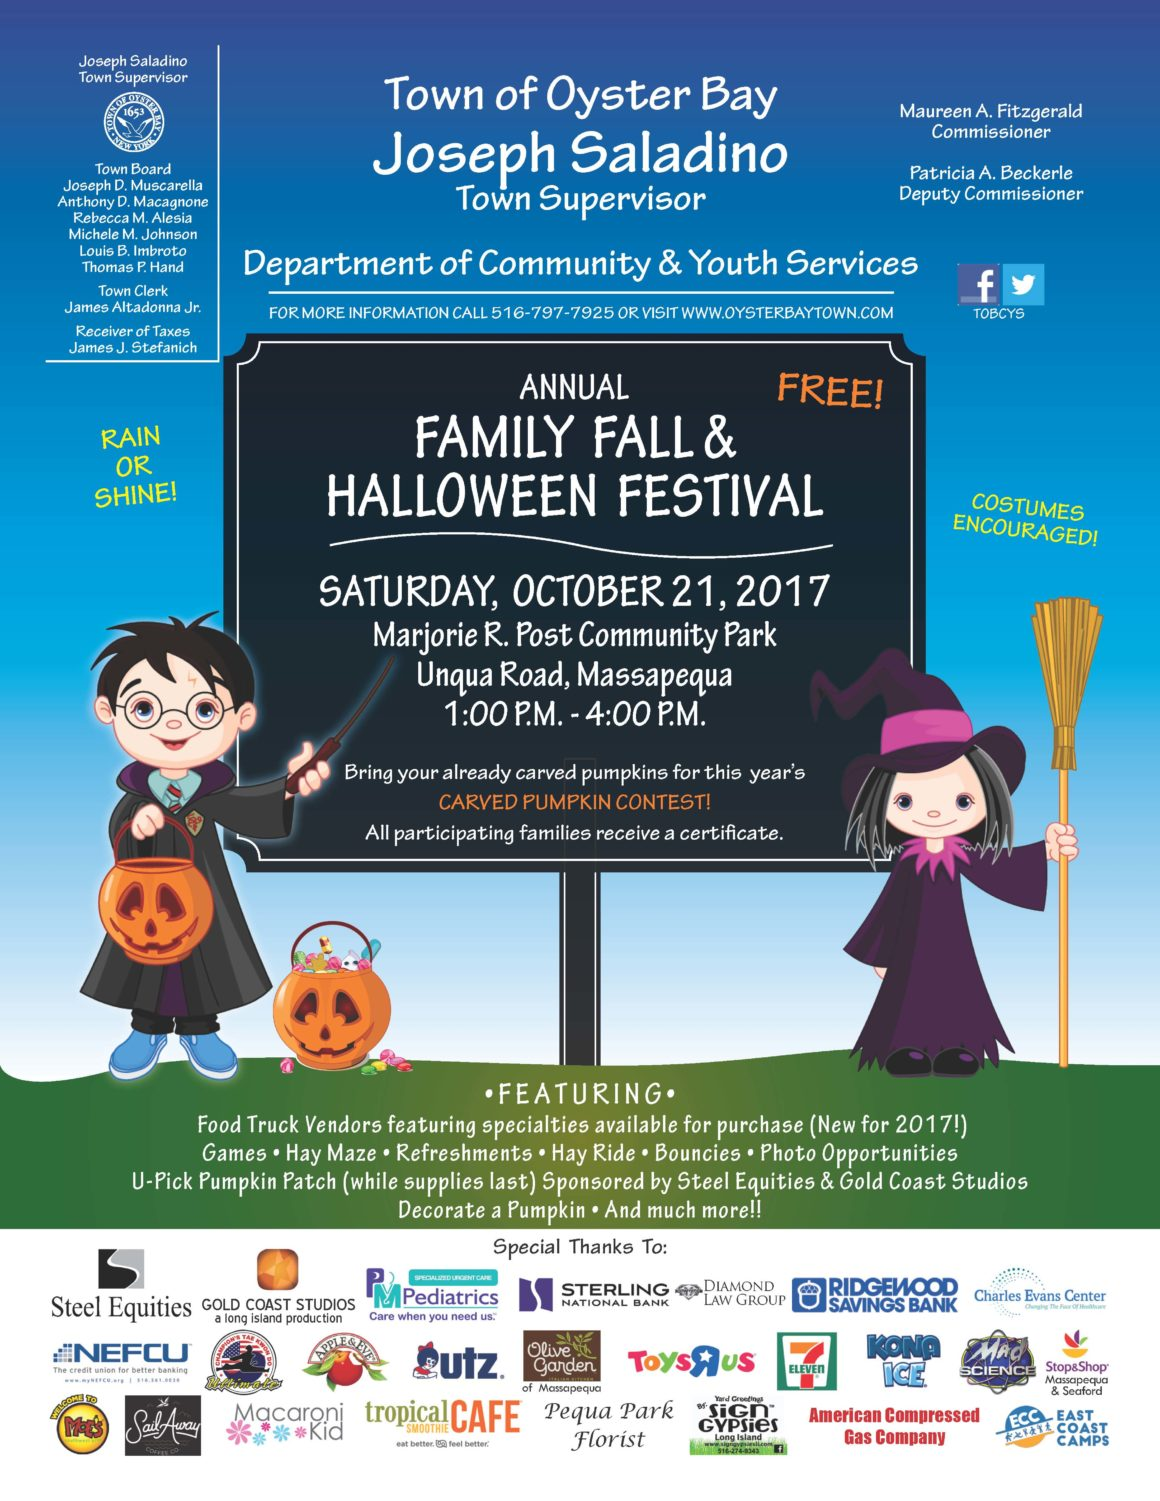 Saladino Invites Residents To Free Family Fall & Halloween Festival